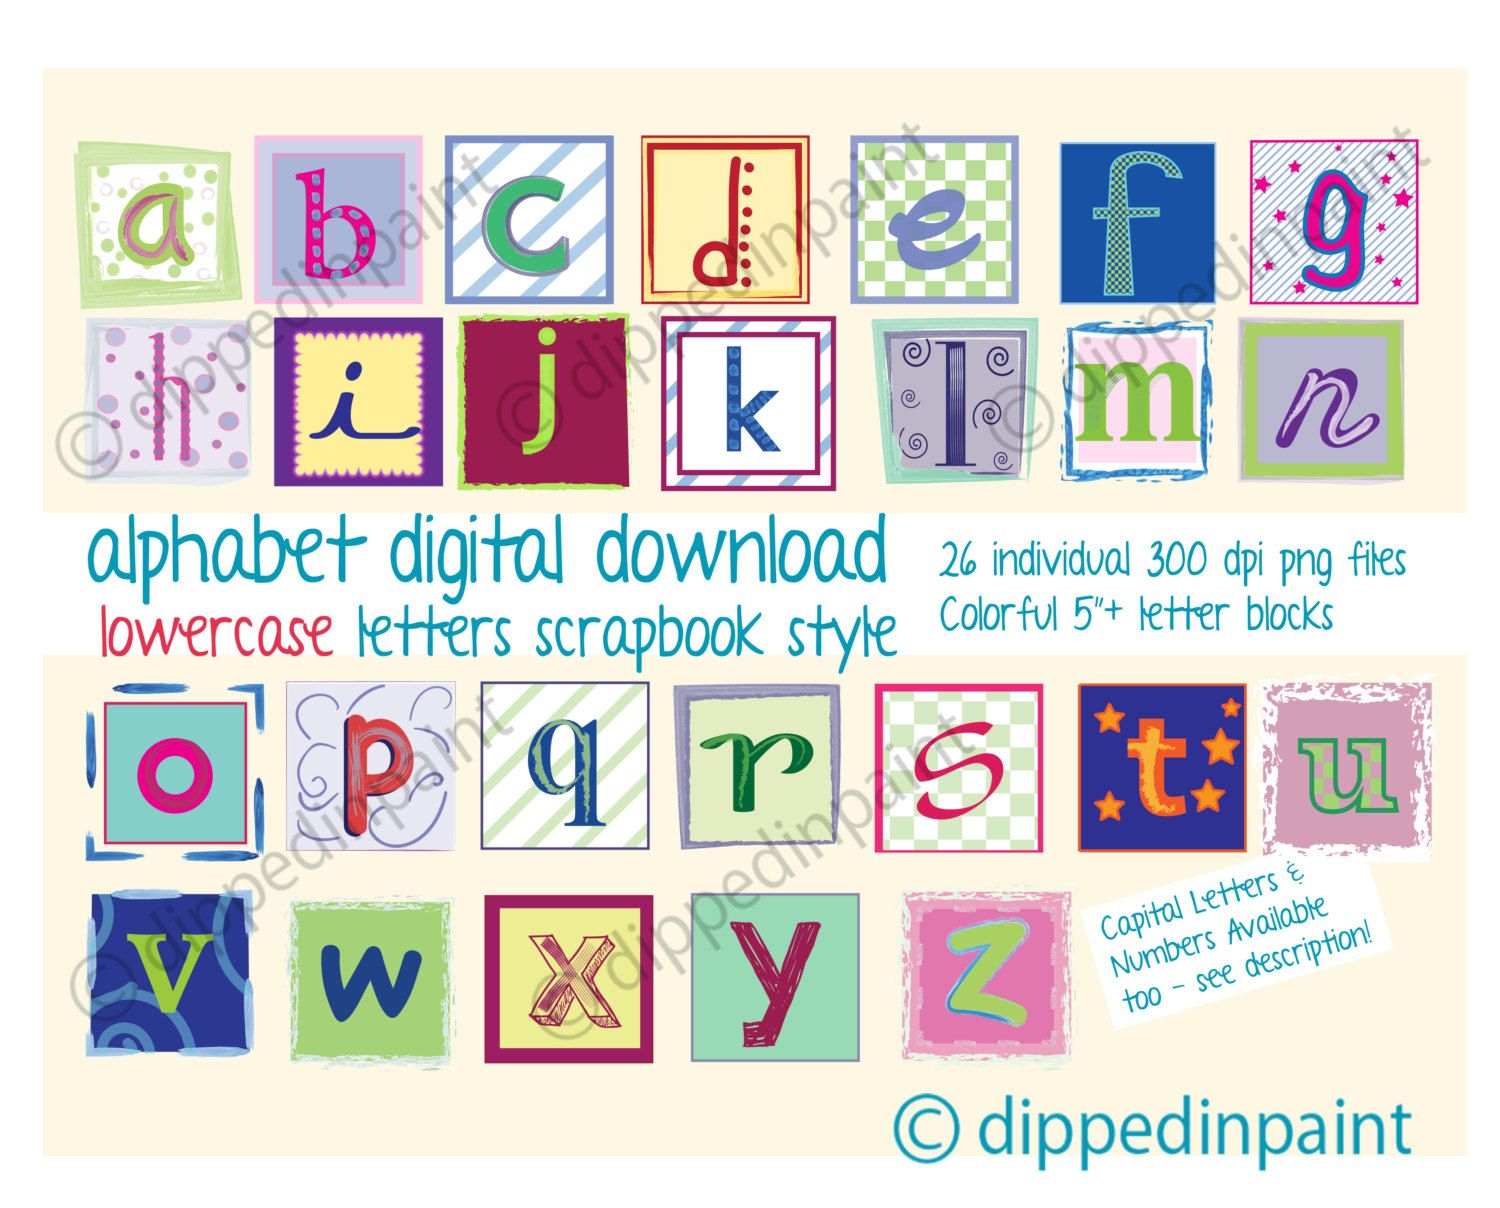 How to scrapbook letters - Alphabet Digital Download Colorful Letter Blocks Baby Digital Letters Photographers Commercial Use